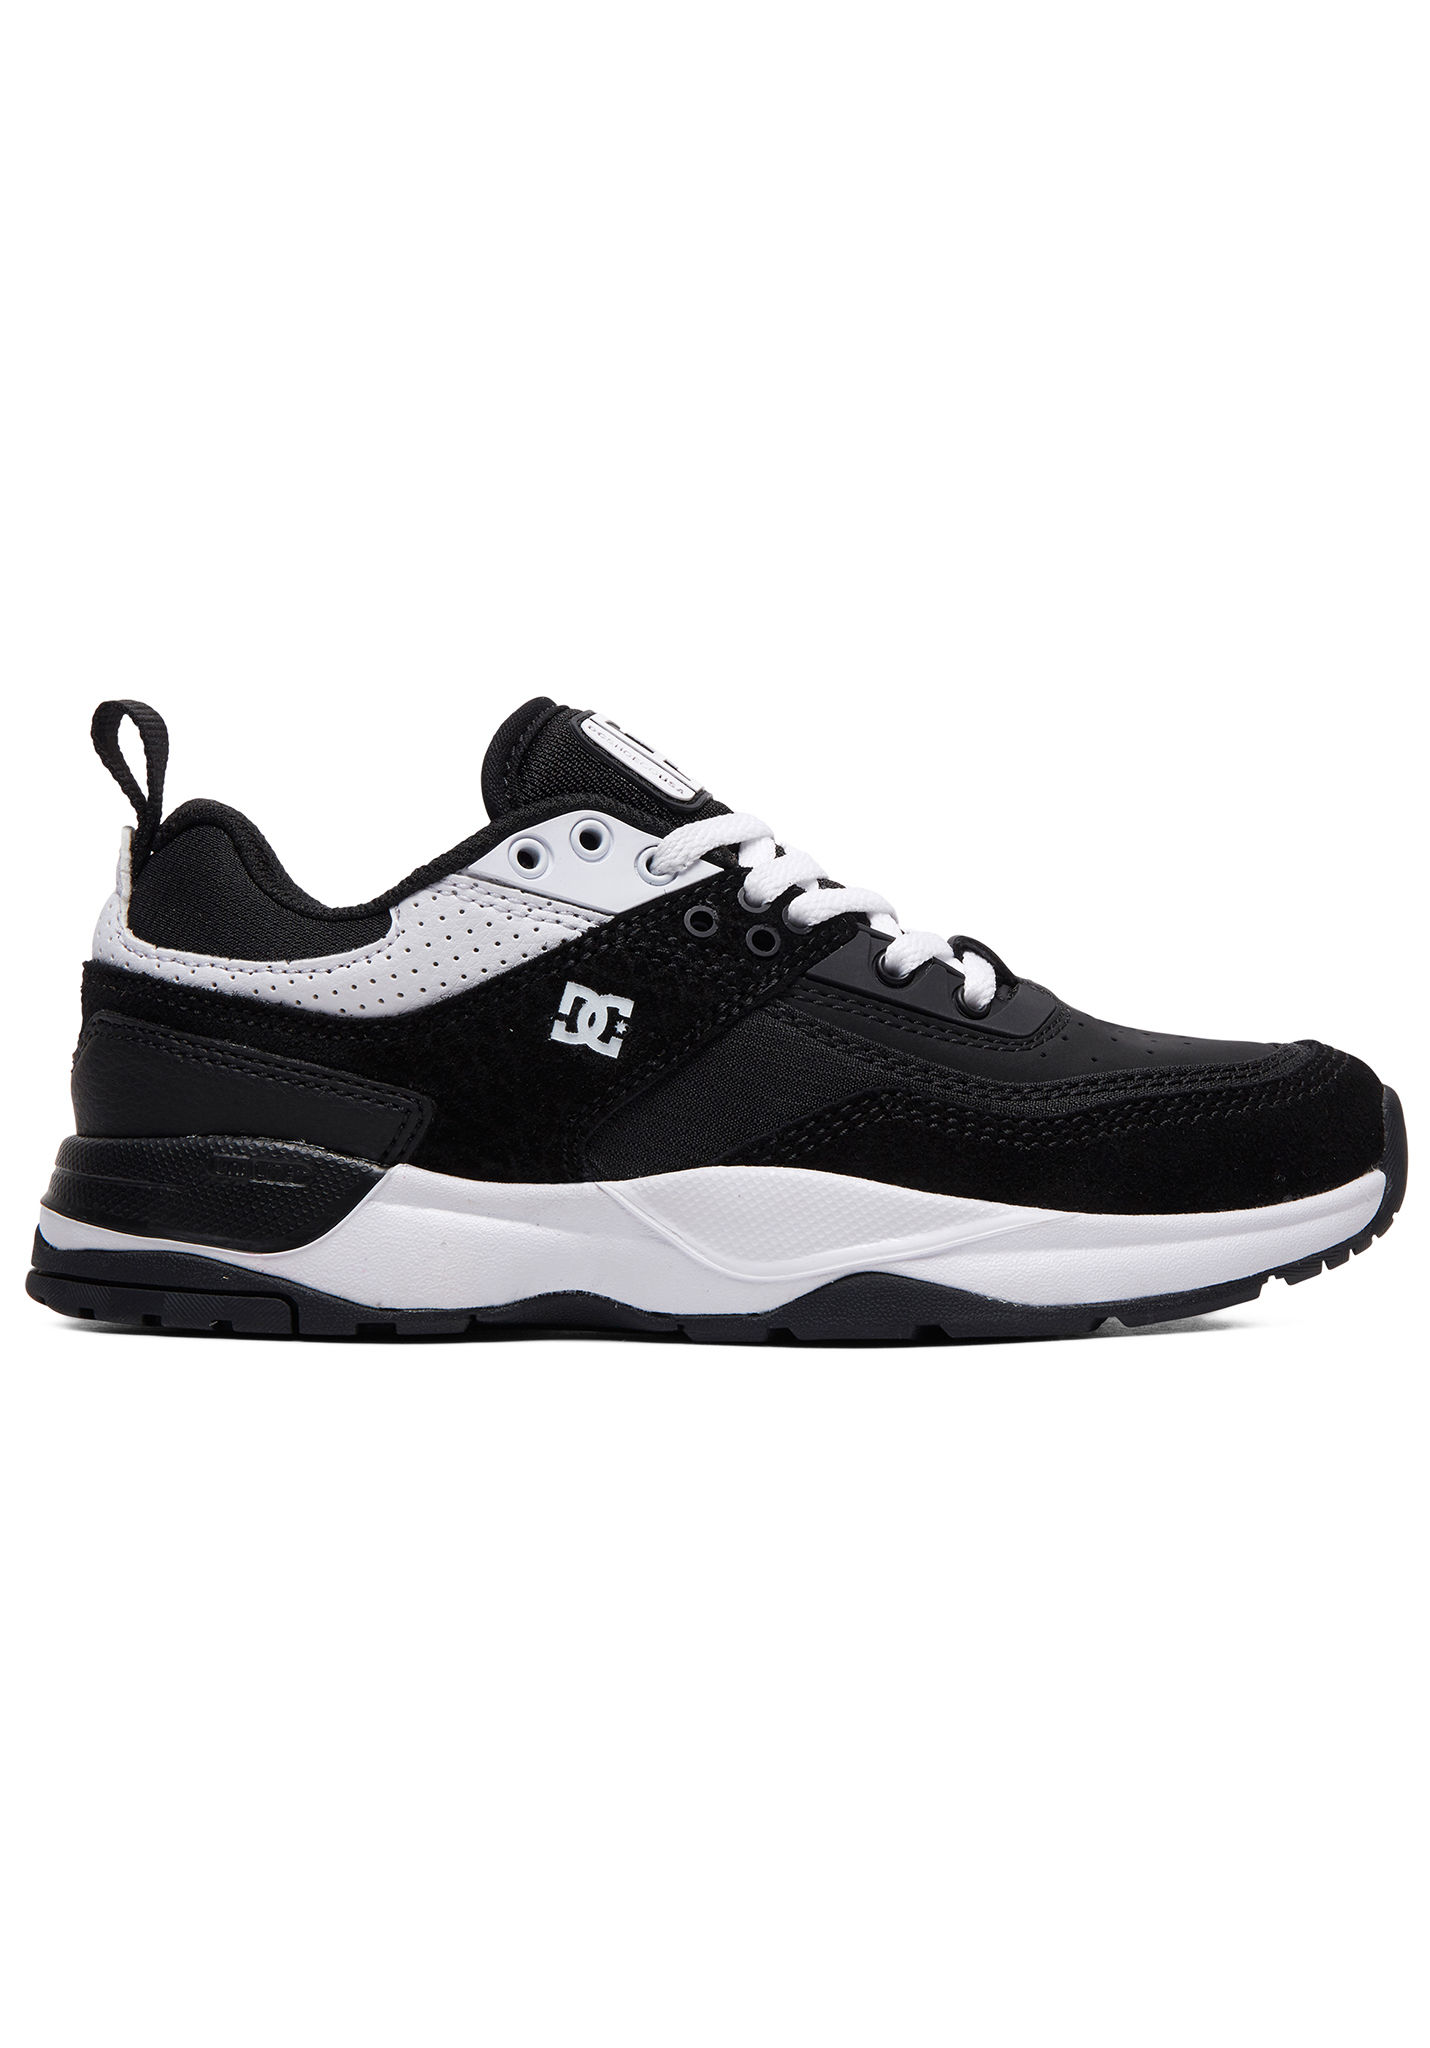 1304b9deb3 DC E.Tribeka - Sneakers for Kids Boys - Black - Planet Sports